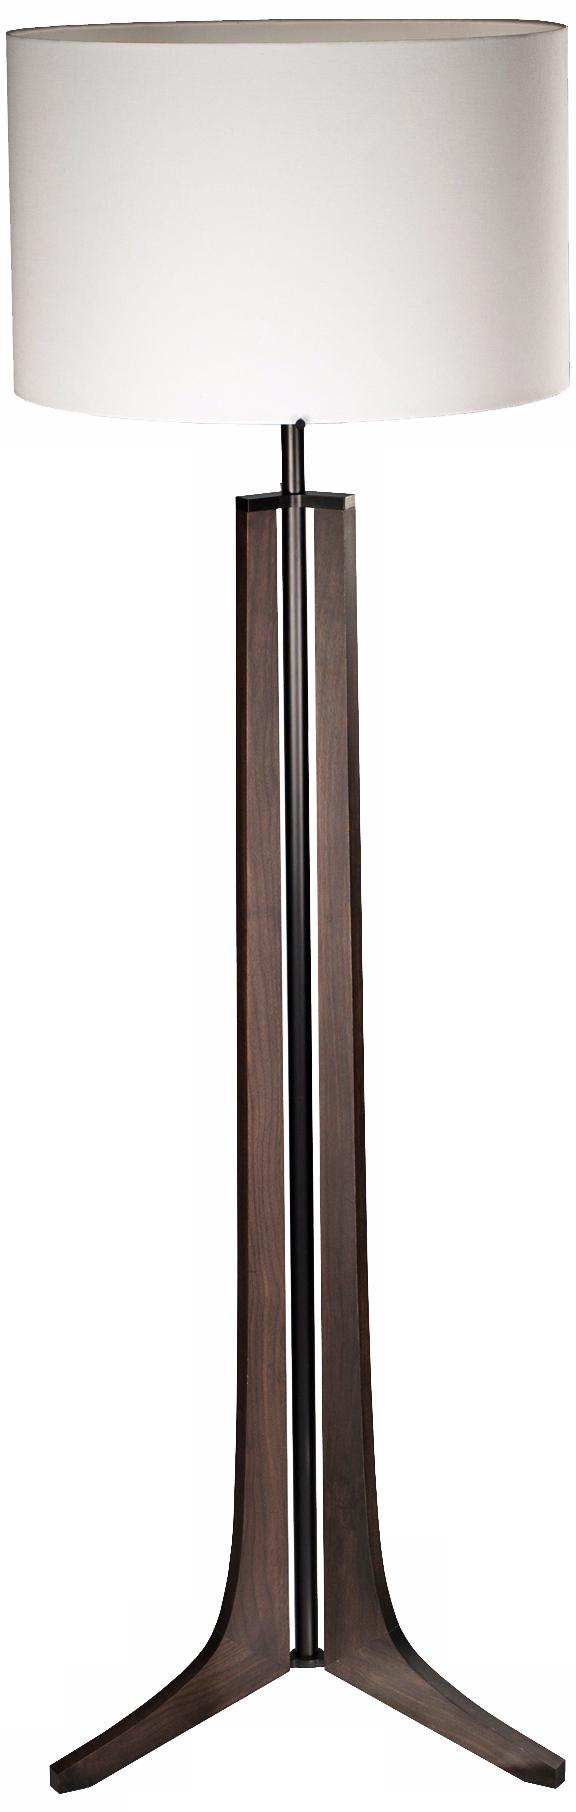 Cerno Forma Black Walnut LED Floor Lamp with Linen Shade (X6766)